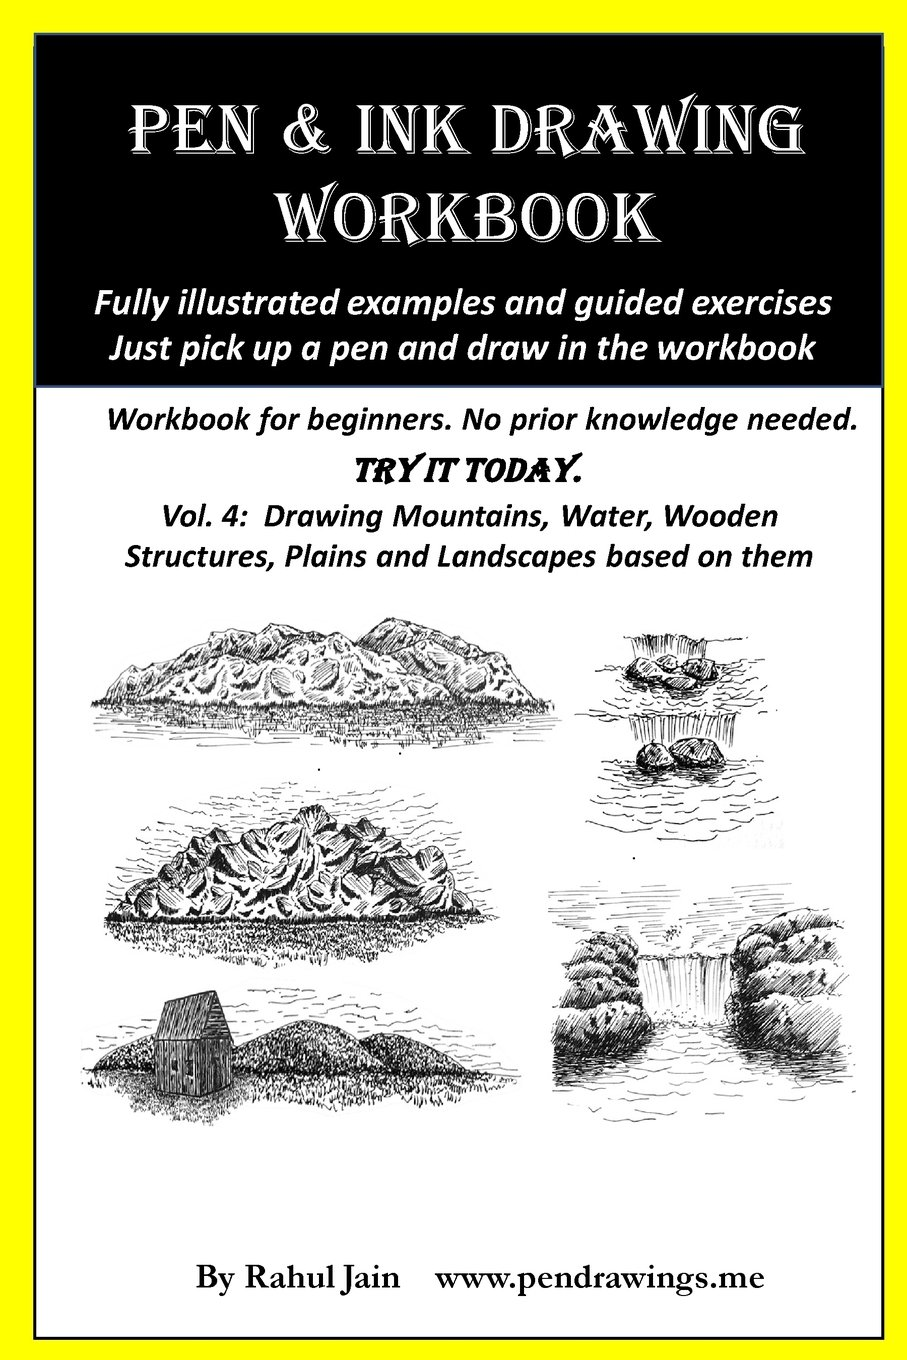 Pen and Ink Drawing Workbook Vol 4: Learn to Draw Pleasing Pen & Ink